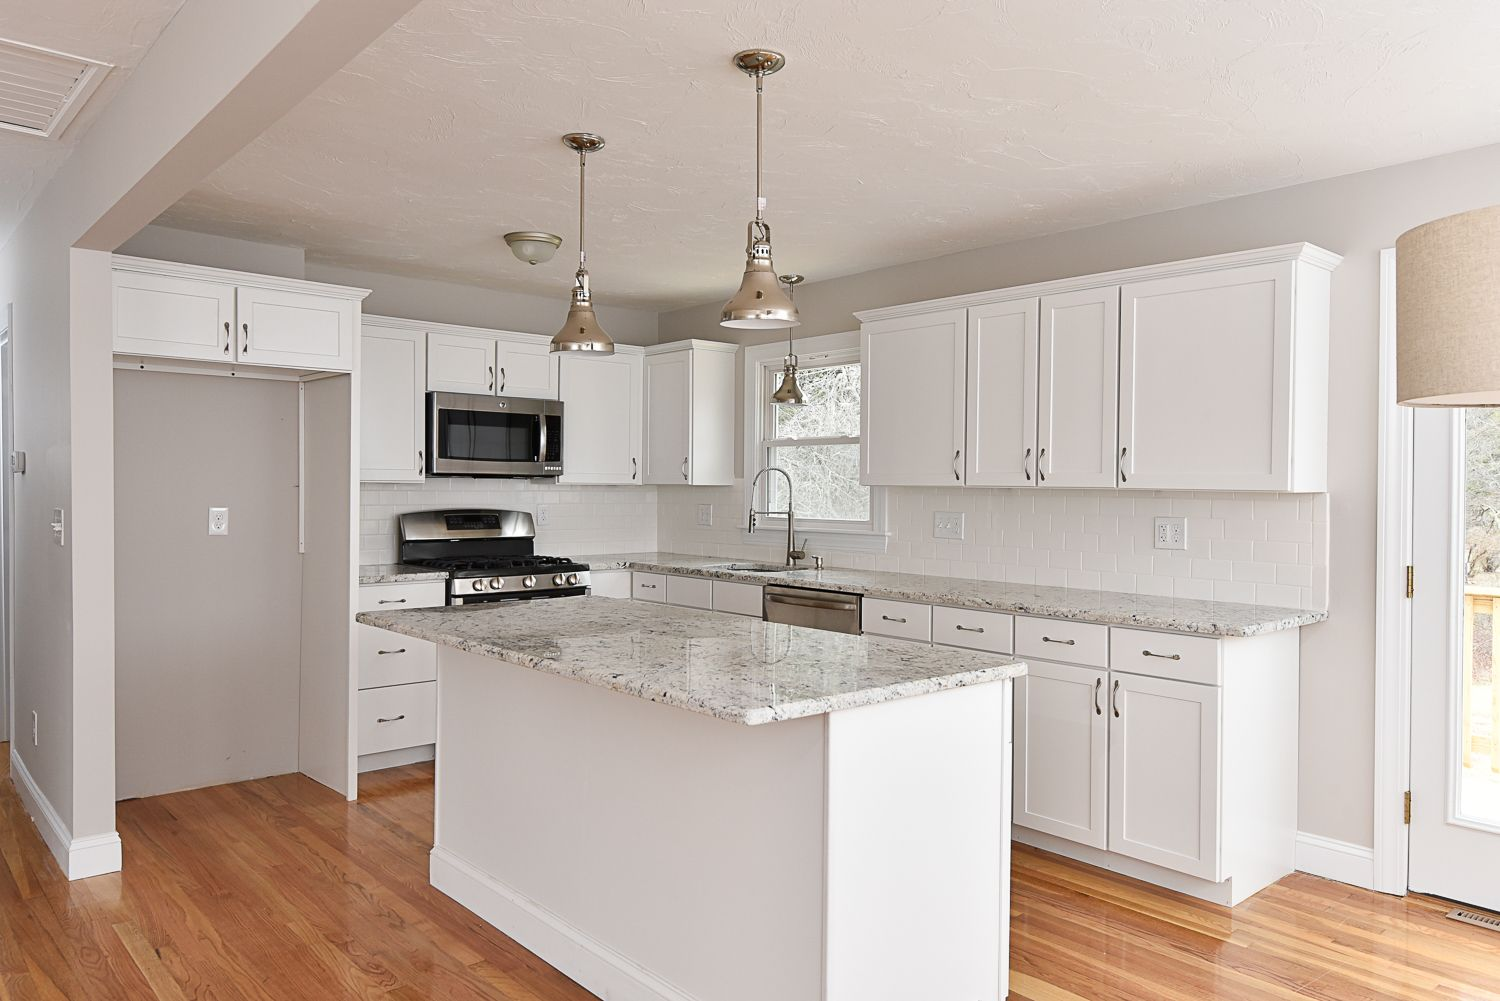 For sale hanover ma 419 900 paint ben moore bm for Kitchen remodel raised ranch